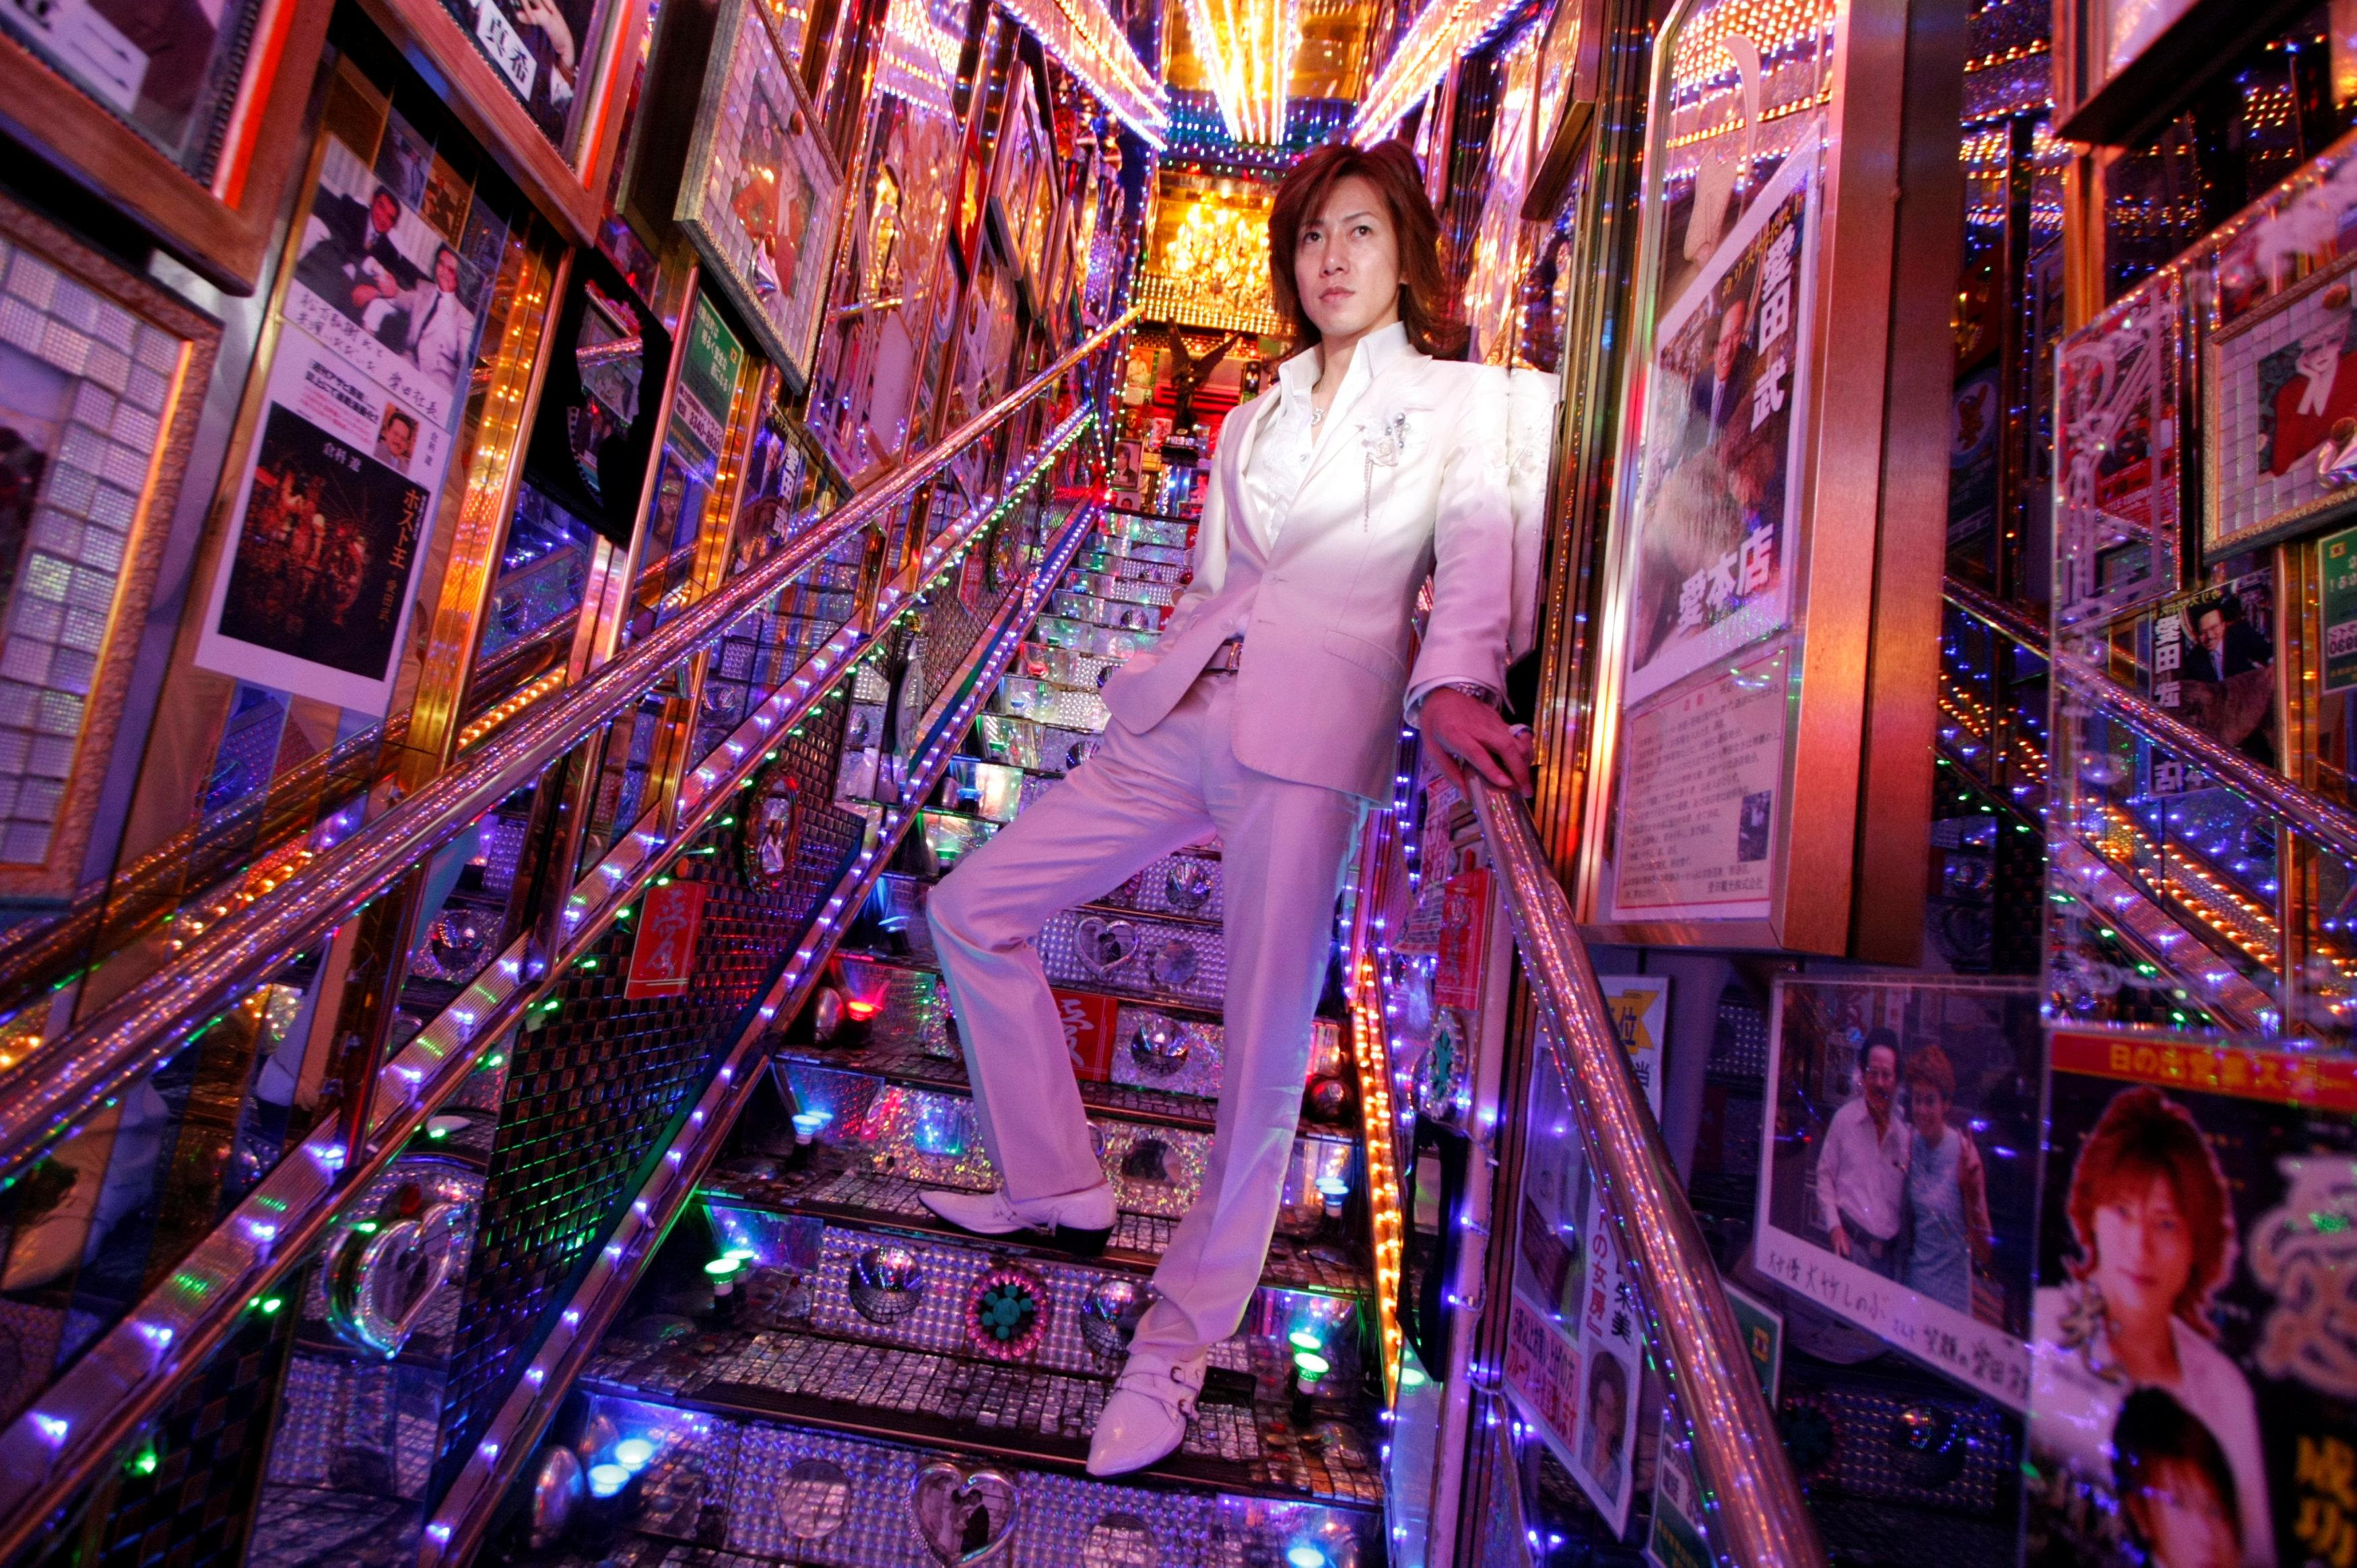 Hikaru Aizawa, who entertains female customers as a host in a club in Tokyo's red light district, poses for a photograph at his host club in Tokyo's Kabukicho nightlife district, Japan, June 25, 2009. Toru Hanai